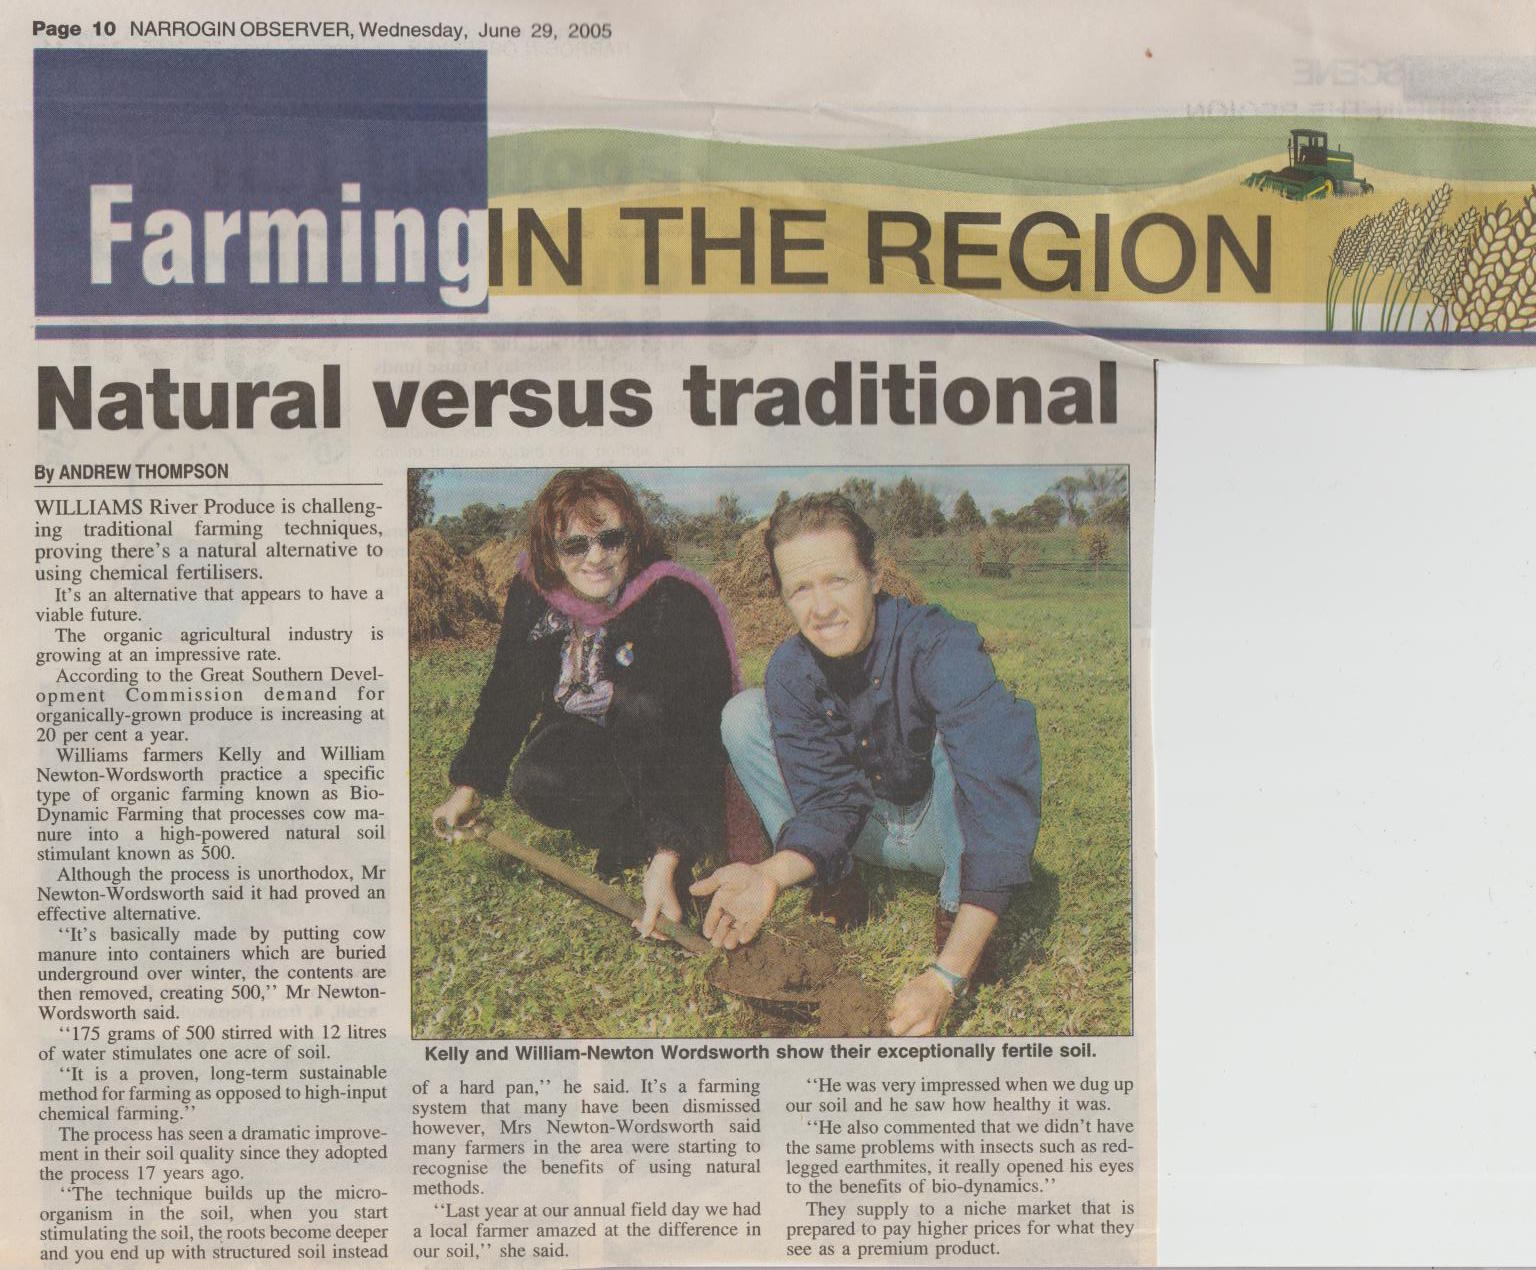 Narrogin Observer 29th June 2005